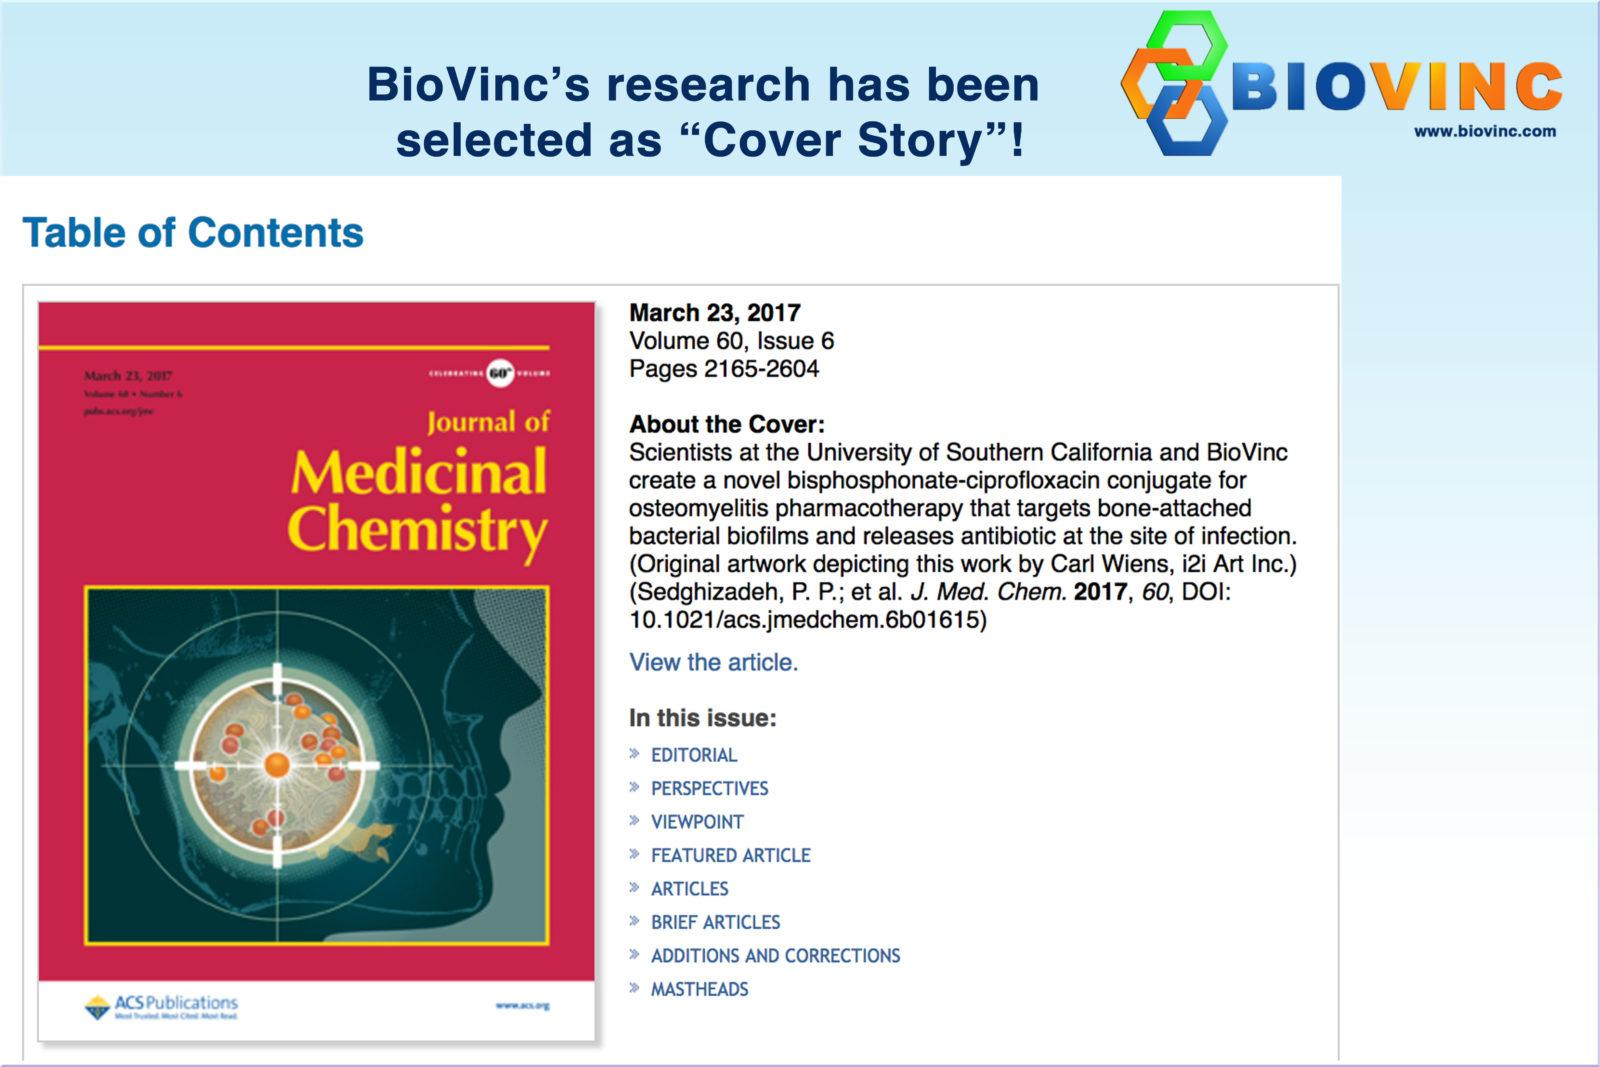 BioVinc's research has been selected as a Cover Story in the Journal of Medicinal Chemistry